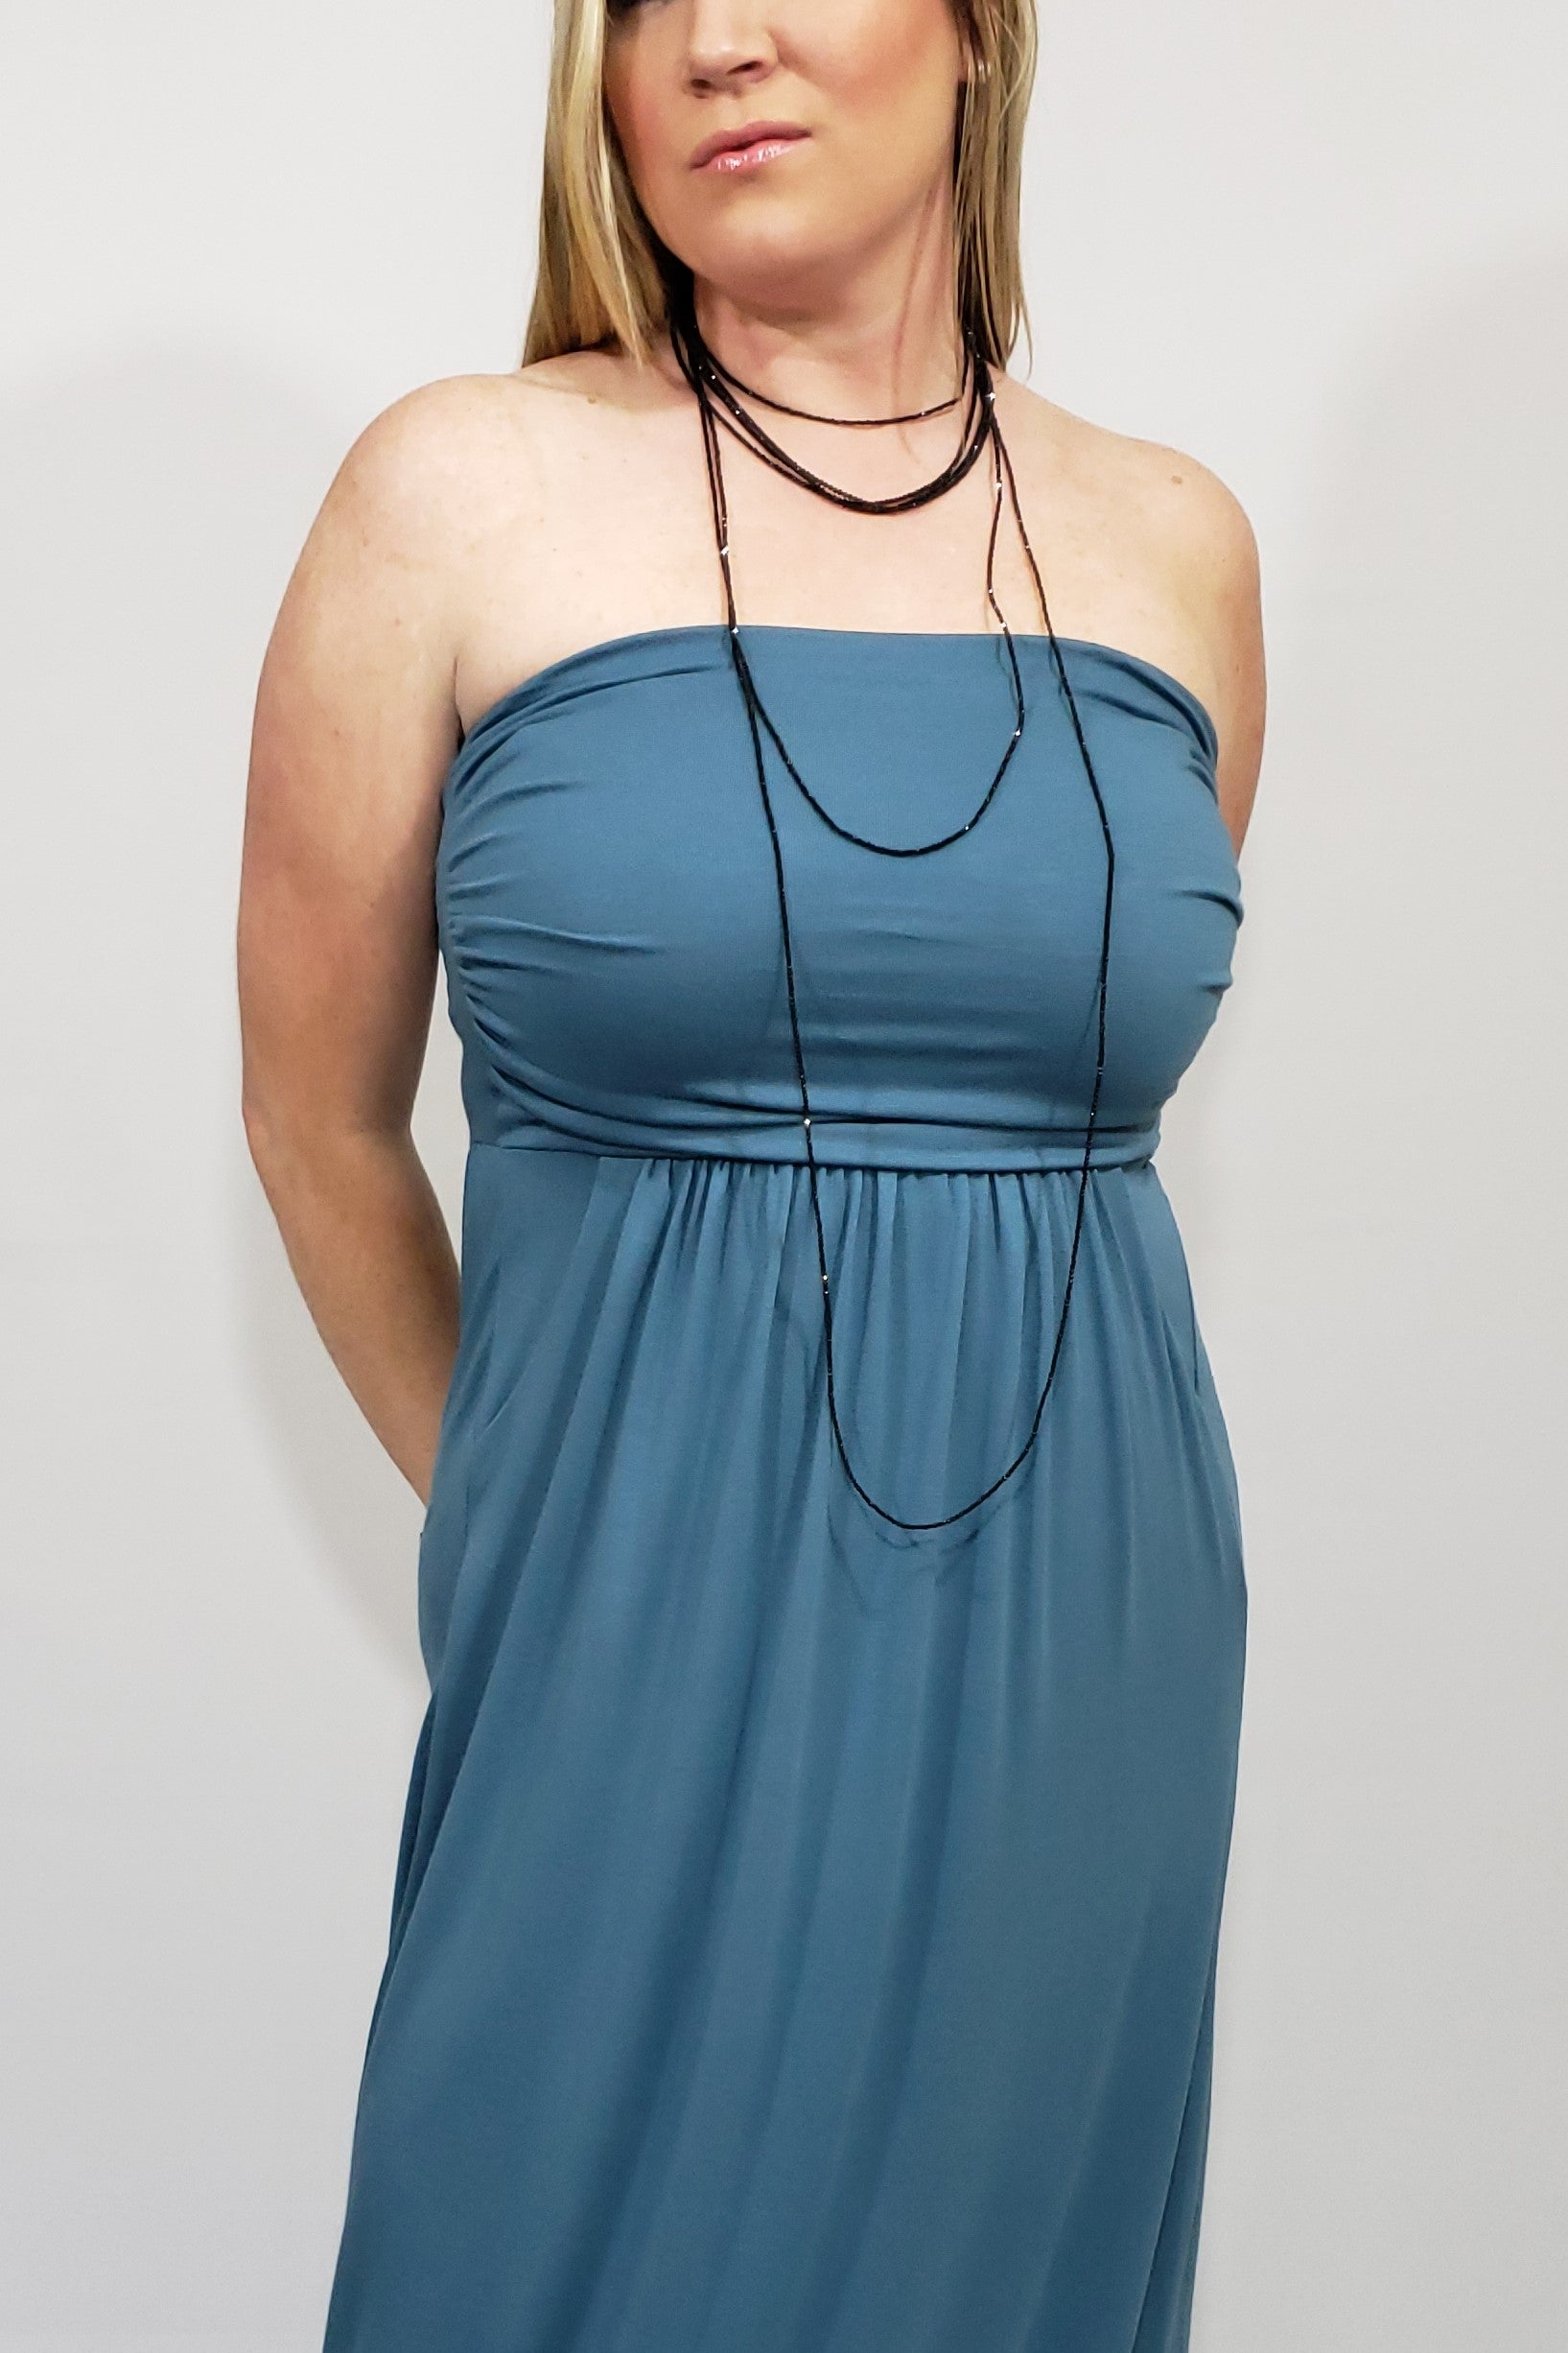 A Pocket Full of Delights Maxi Tube Dress in Titanium - Houzz of DVA Boutique